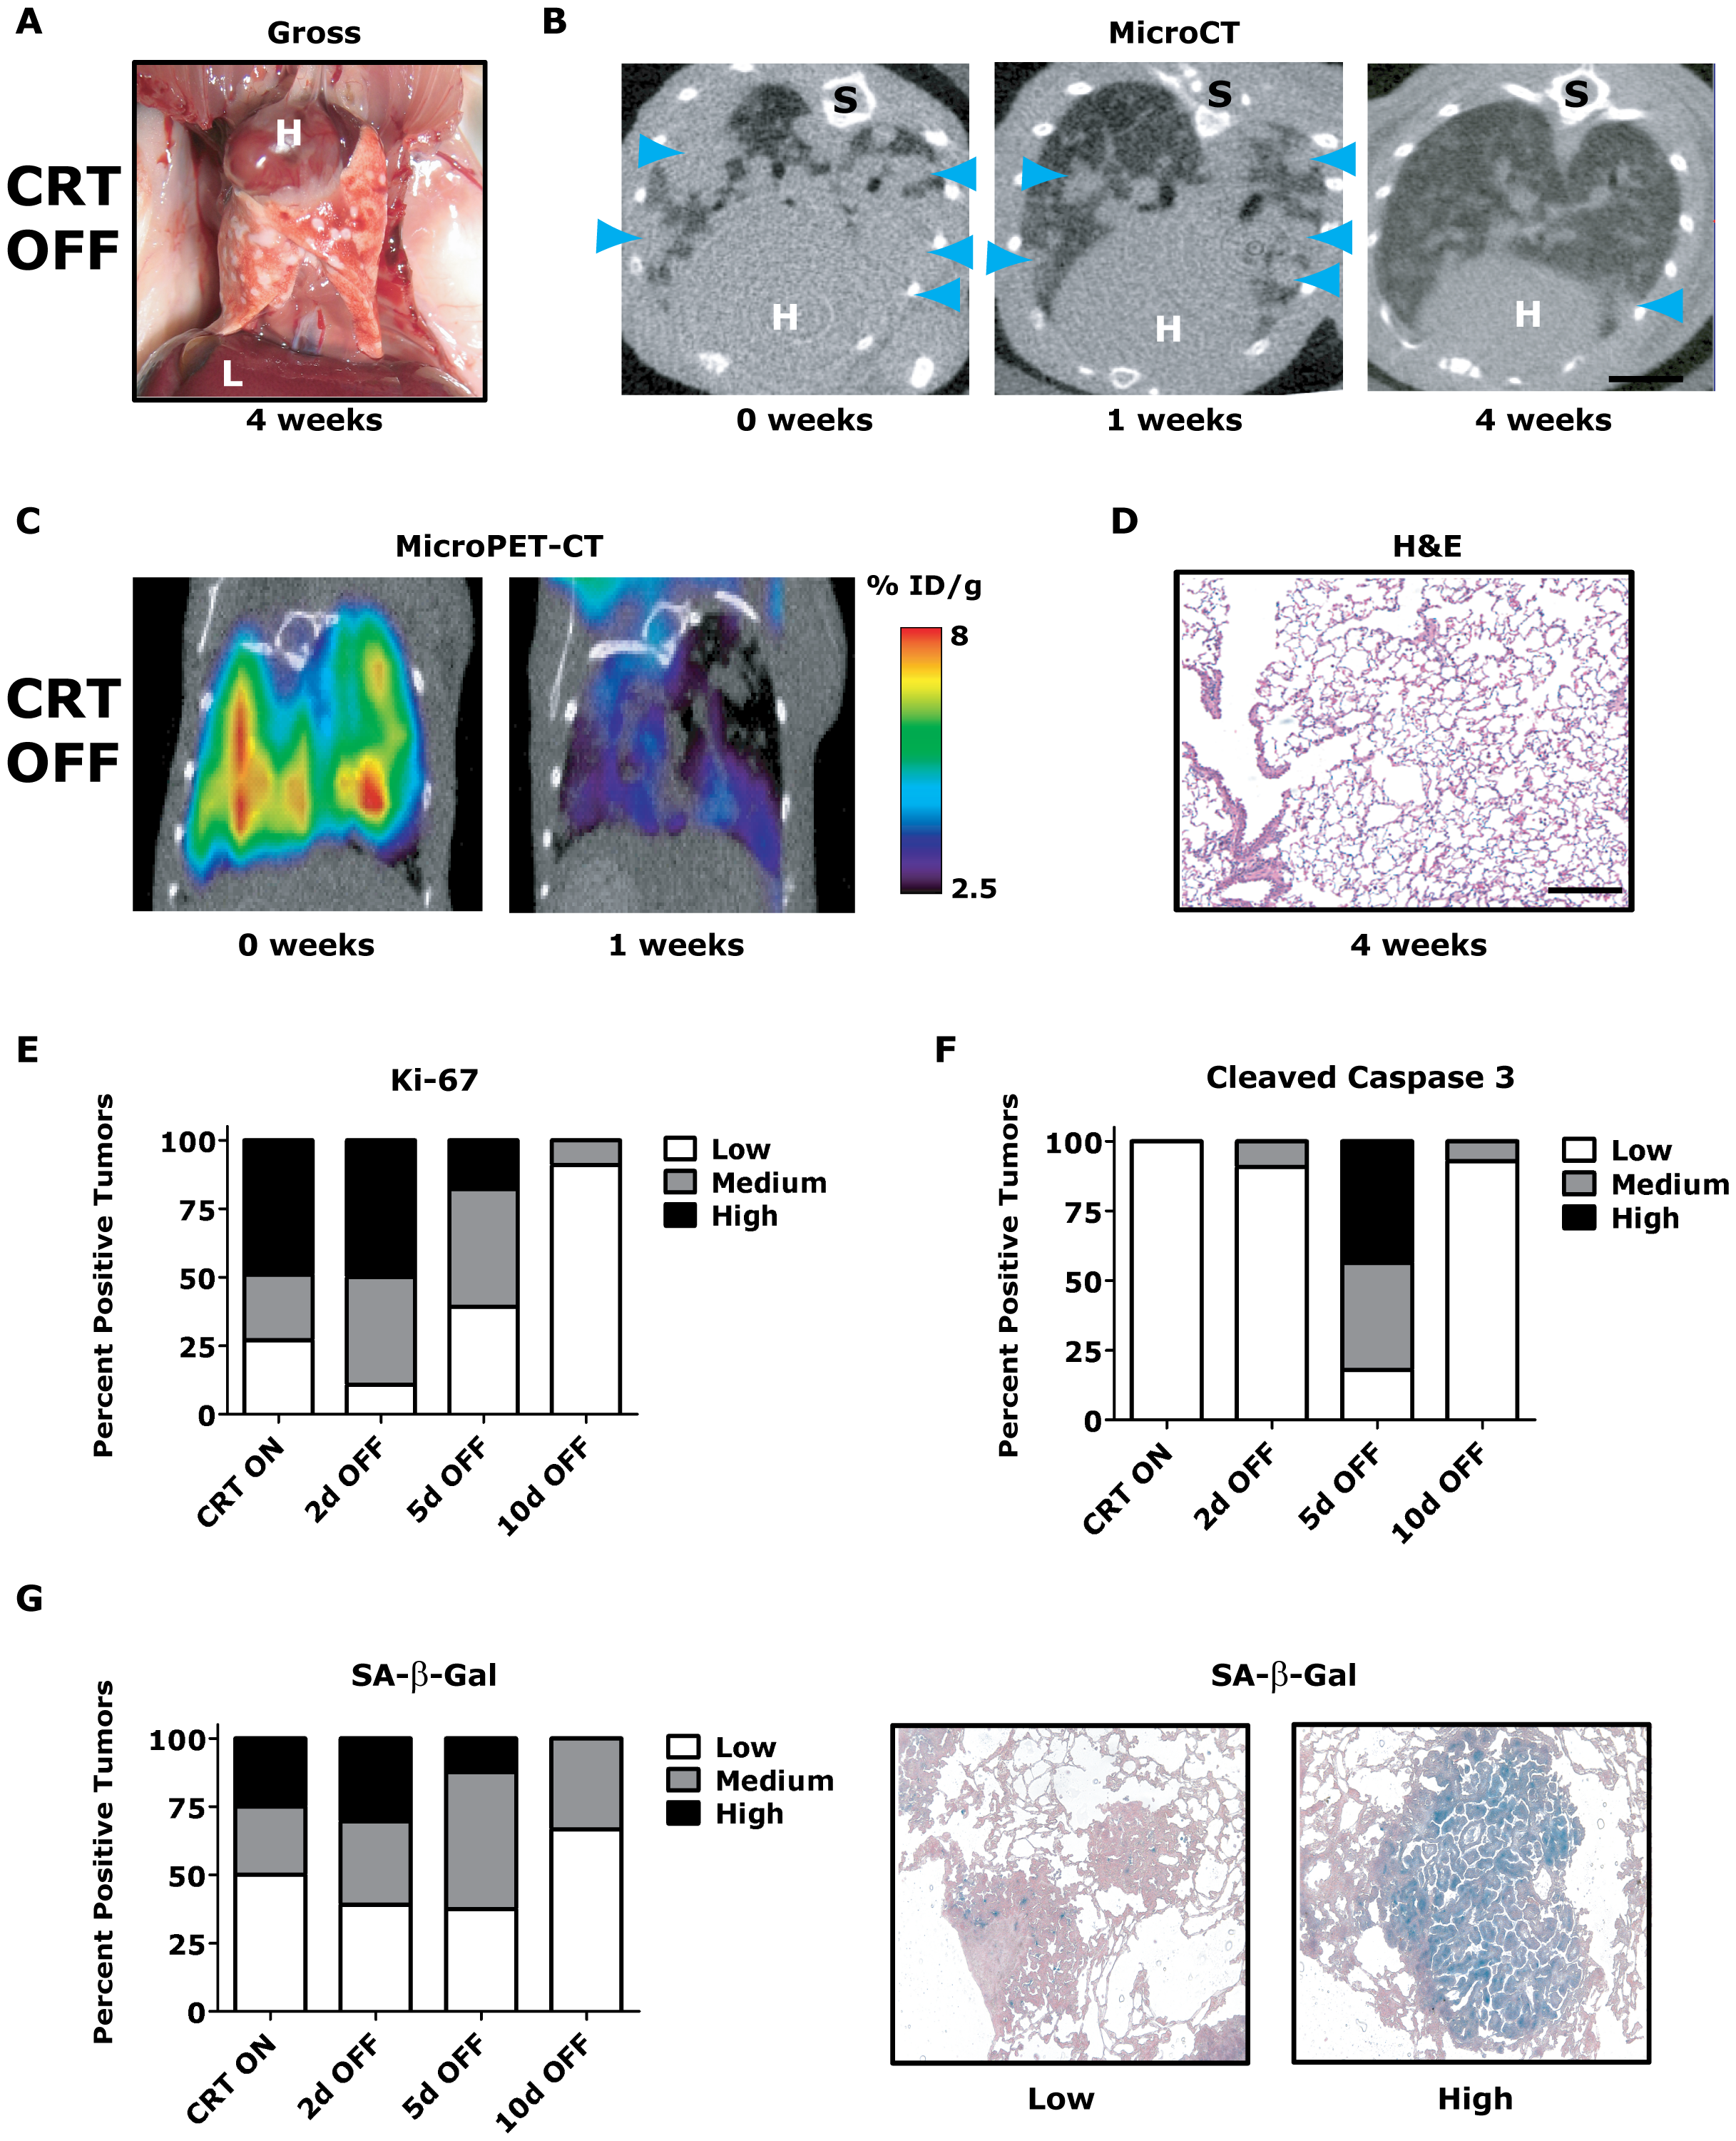 <i>Kras<sup>G12D</sup></i>/<i>Twist1</i>-induced lung tumors regress following combined oncogene inactivation.